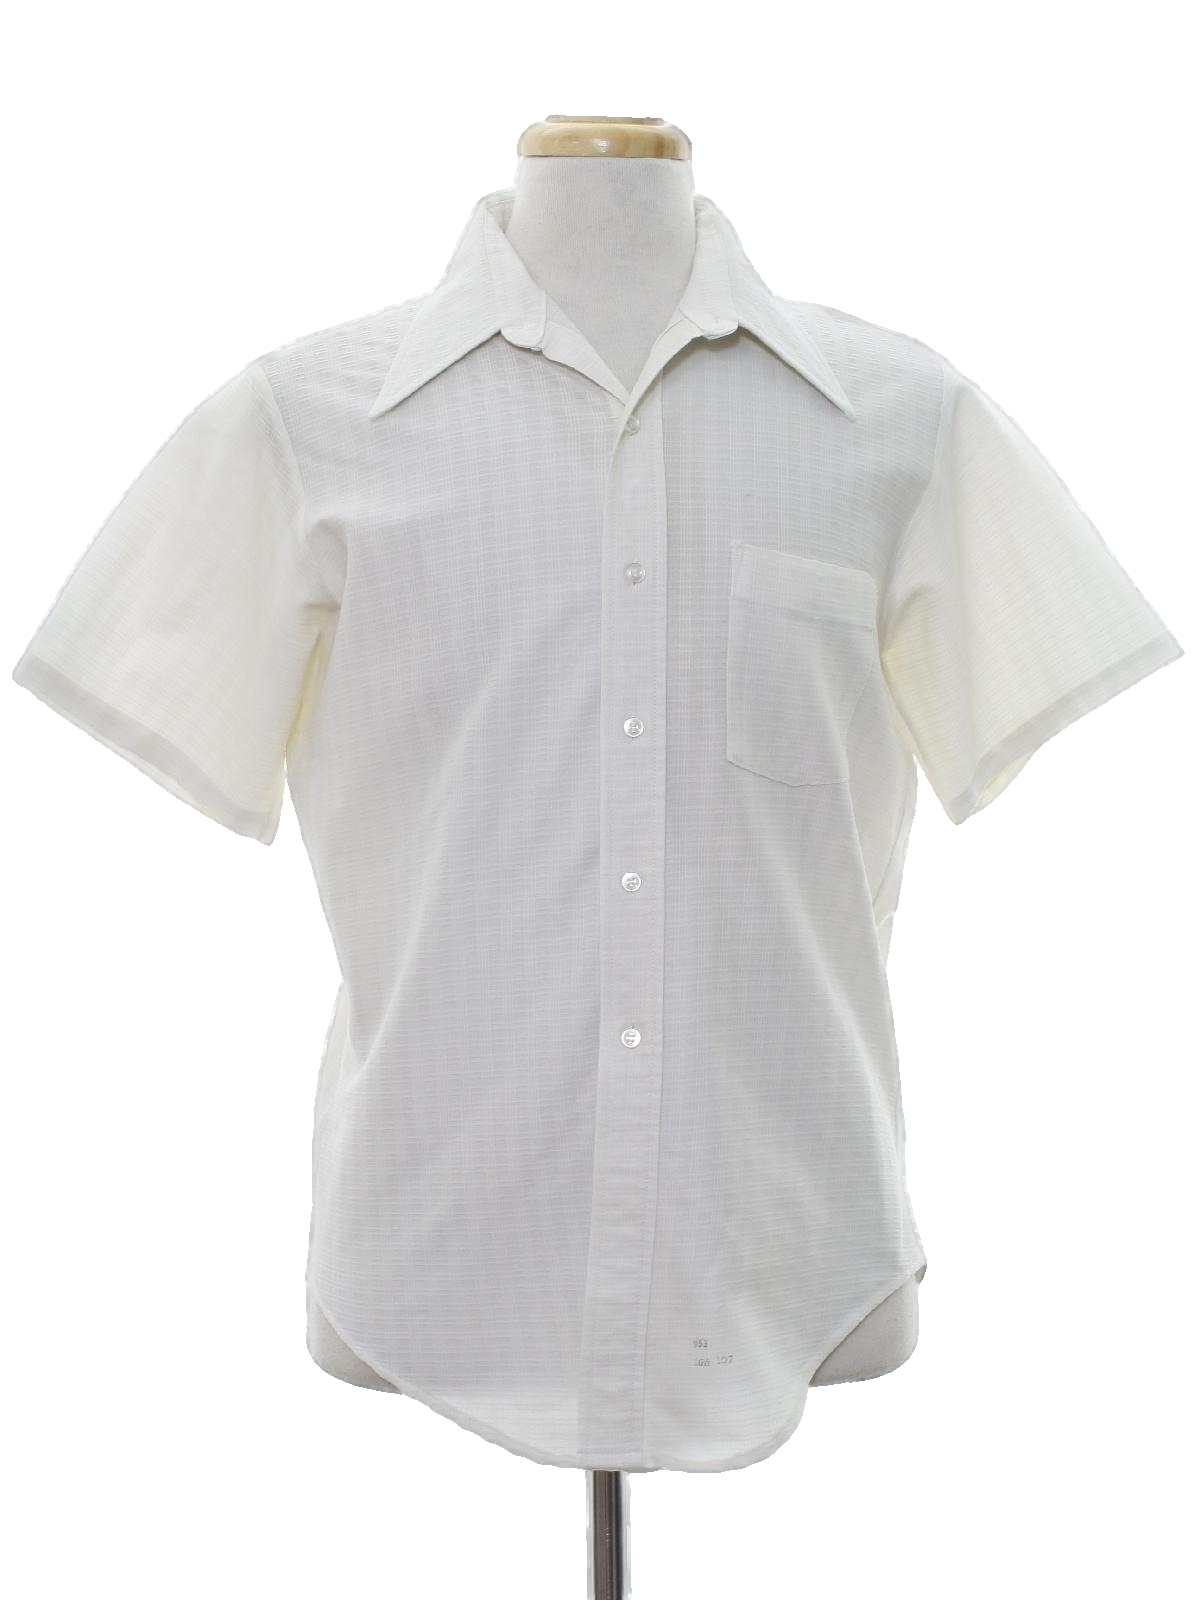 Vintage kmart 70 39 s shirt 70s kmart mens white with for Kmart button up shirts